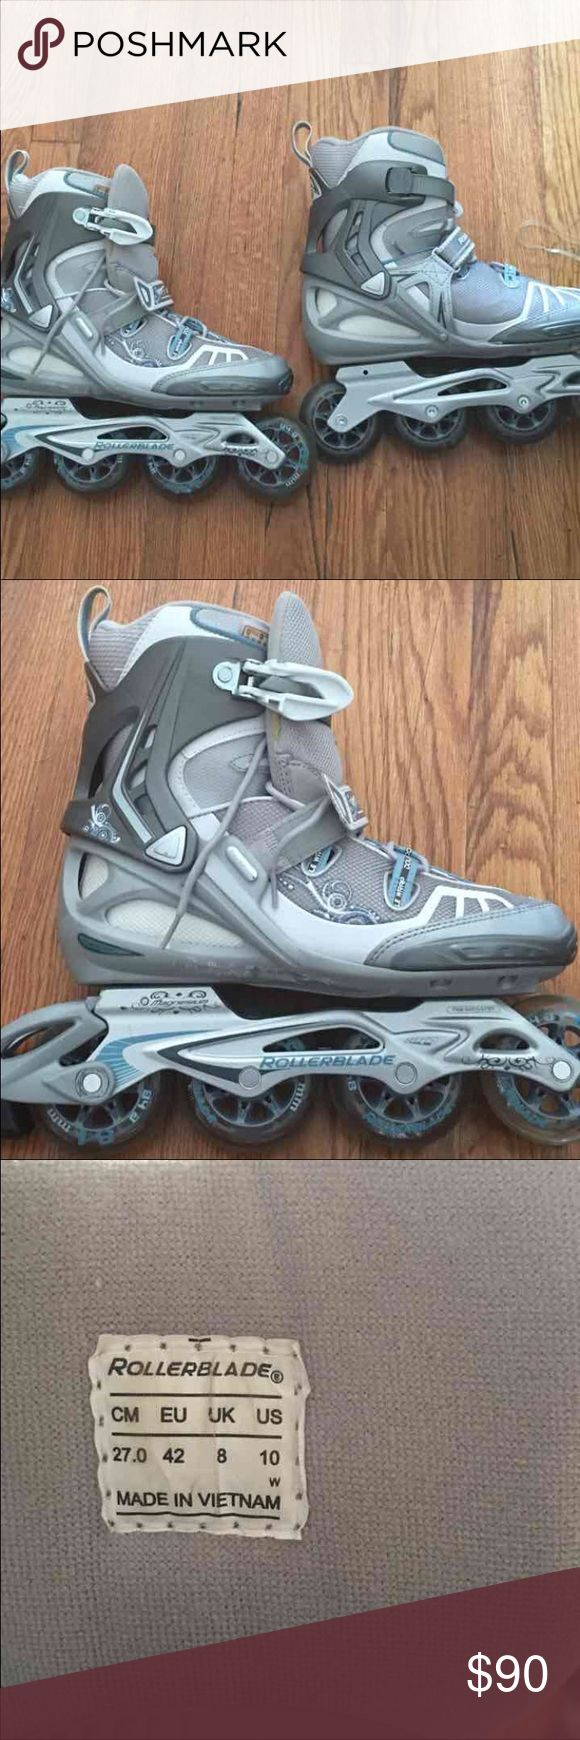 Roller skates under 20 dollars - Rollerblades Size 10 Only Used For 5 Minutes I Bought Them From Another Posher